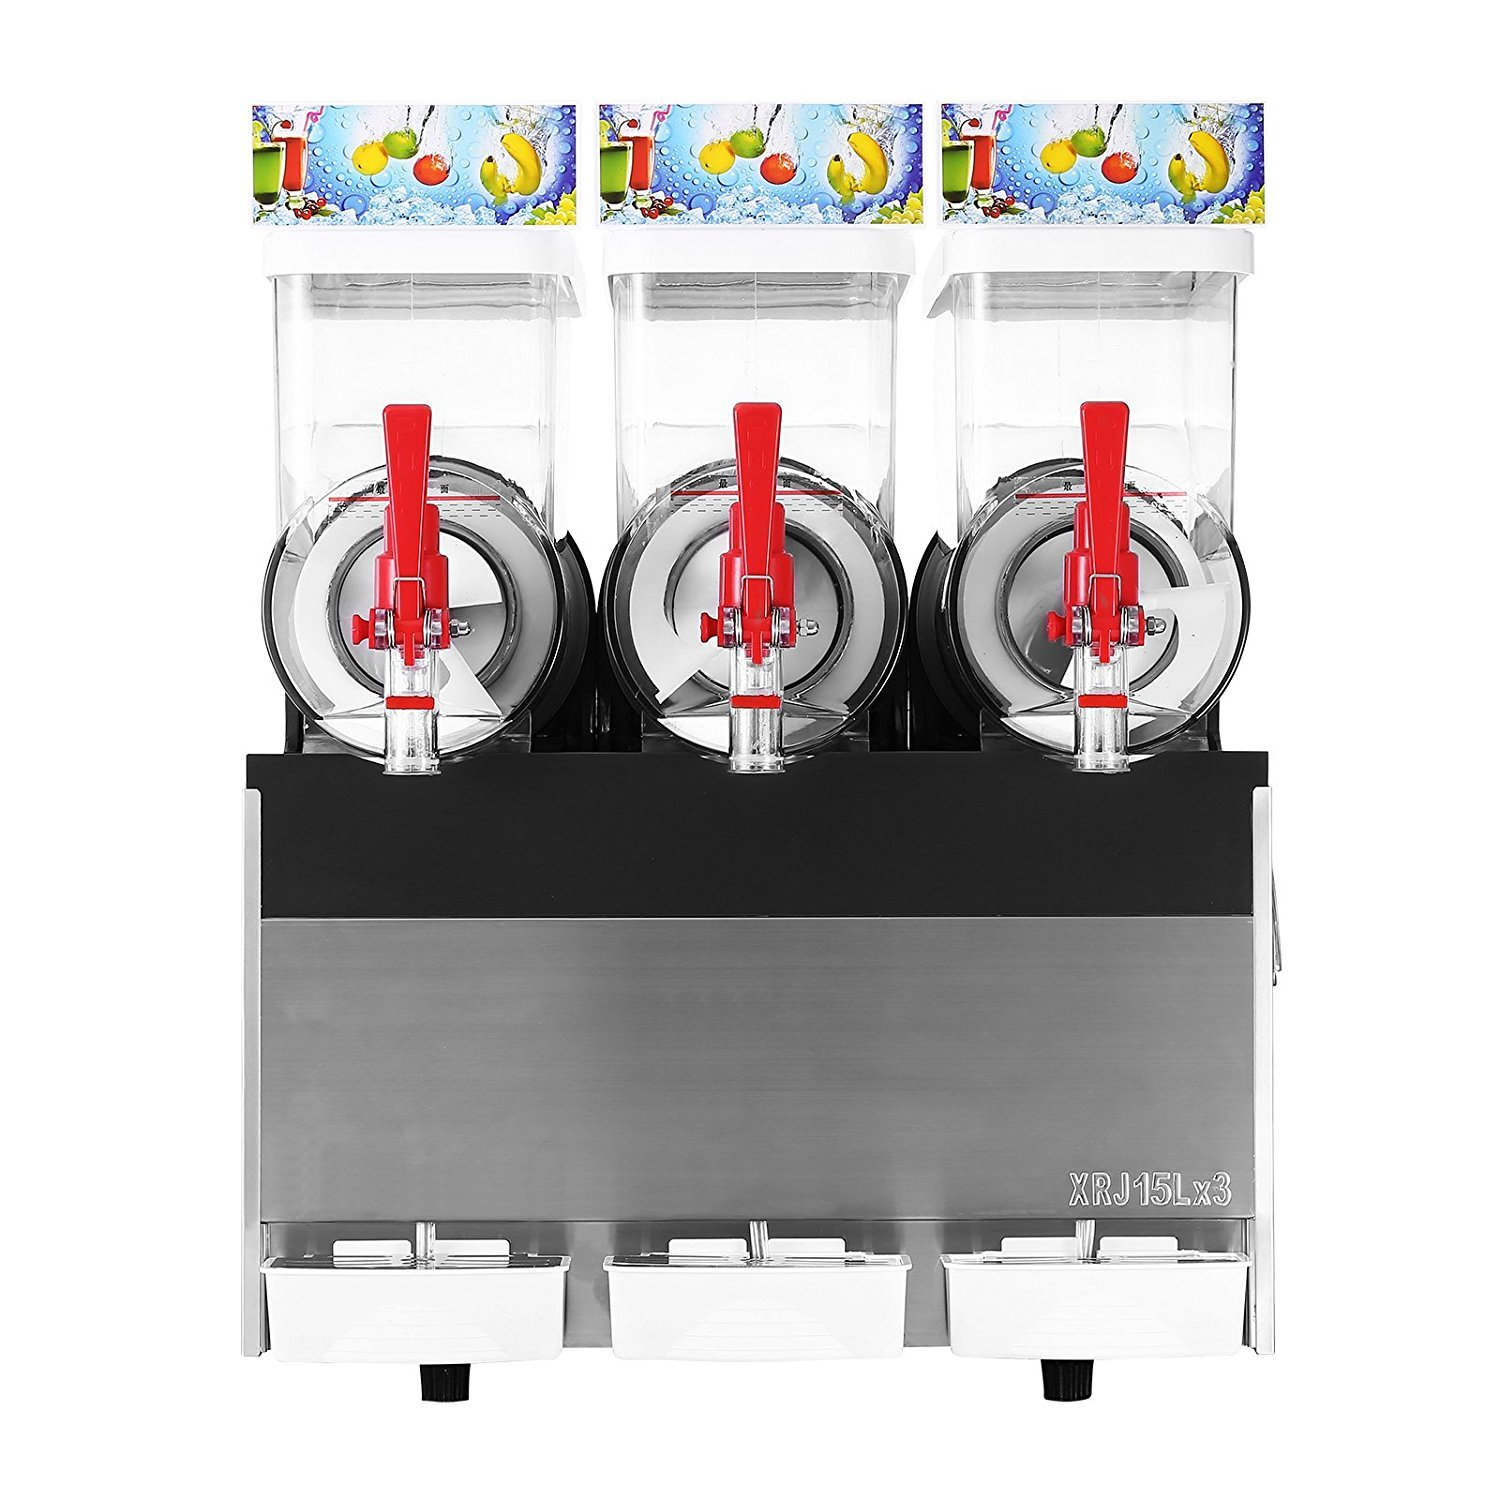 Happybuy 110V Commercial Slushy Machine 500W Stainless Steel Margarita Smoothie Frozen Drink Maker Suitable Perfect for Ice Juice Tea Coffee Making 15L x 3 Tank Sliver by Happybuy (Image #3)